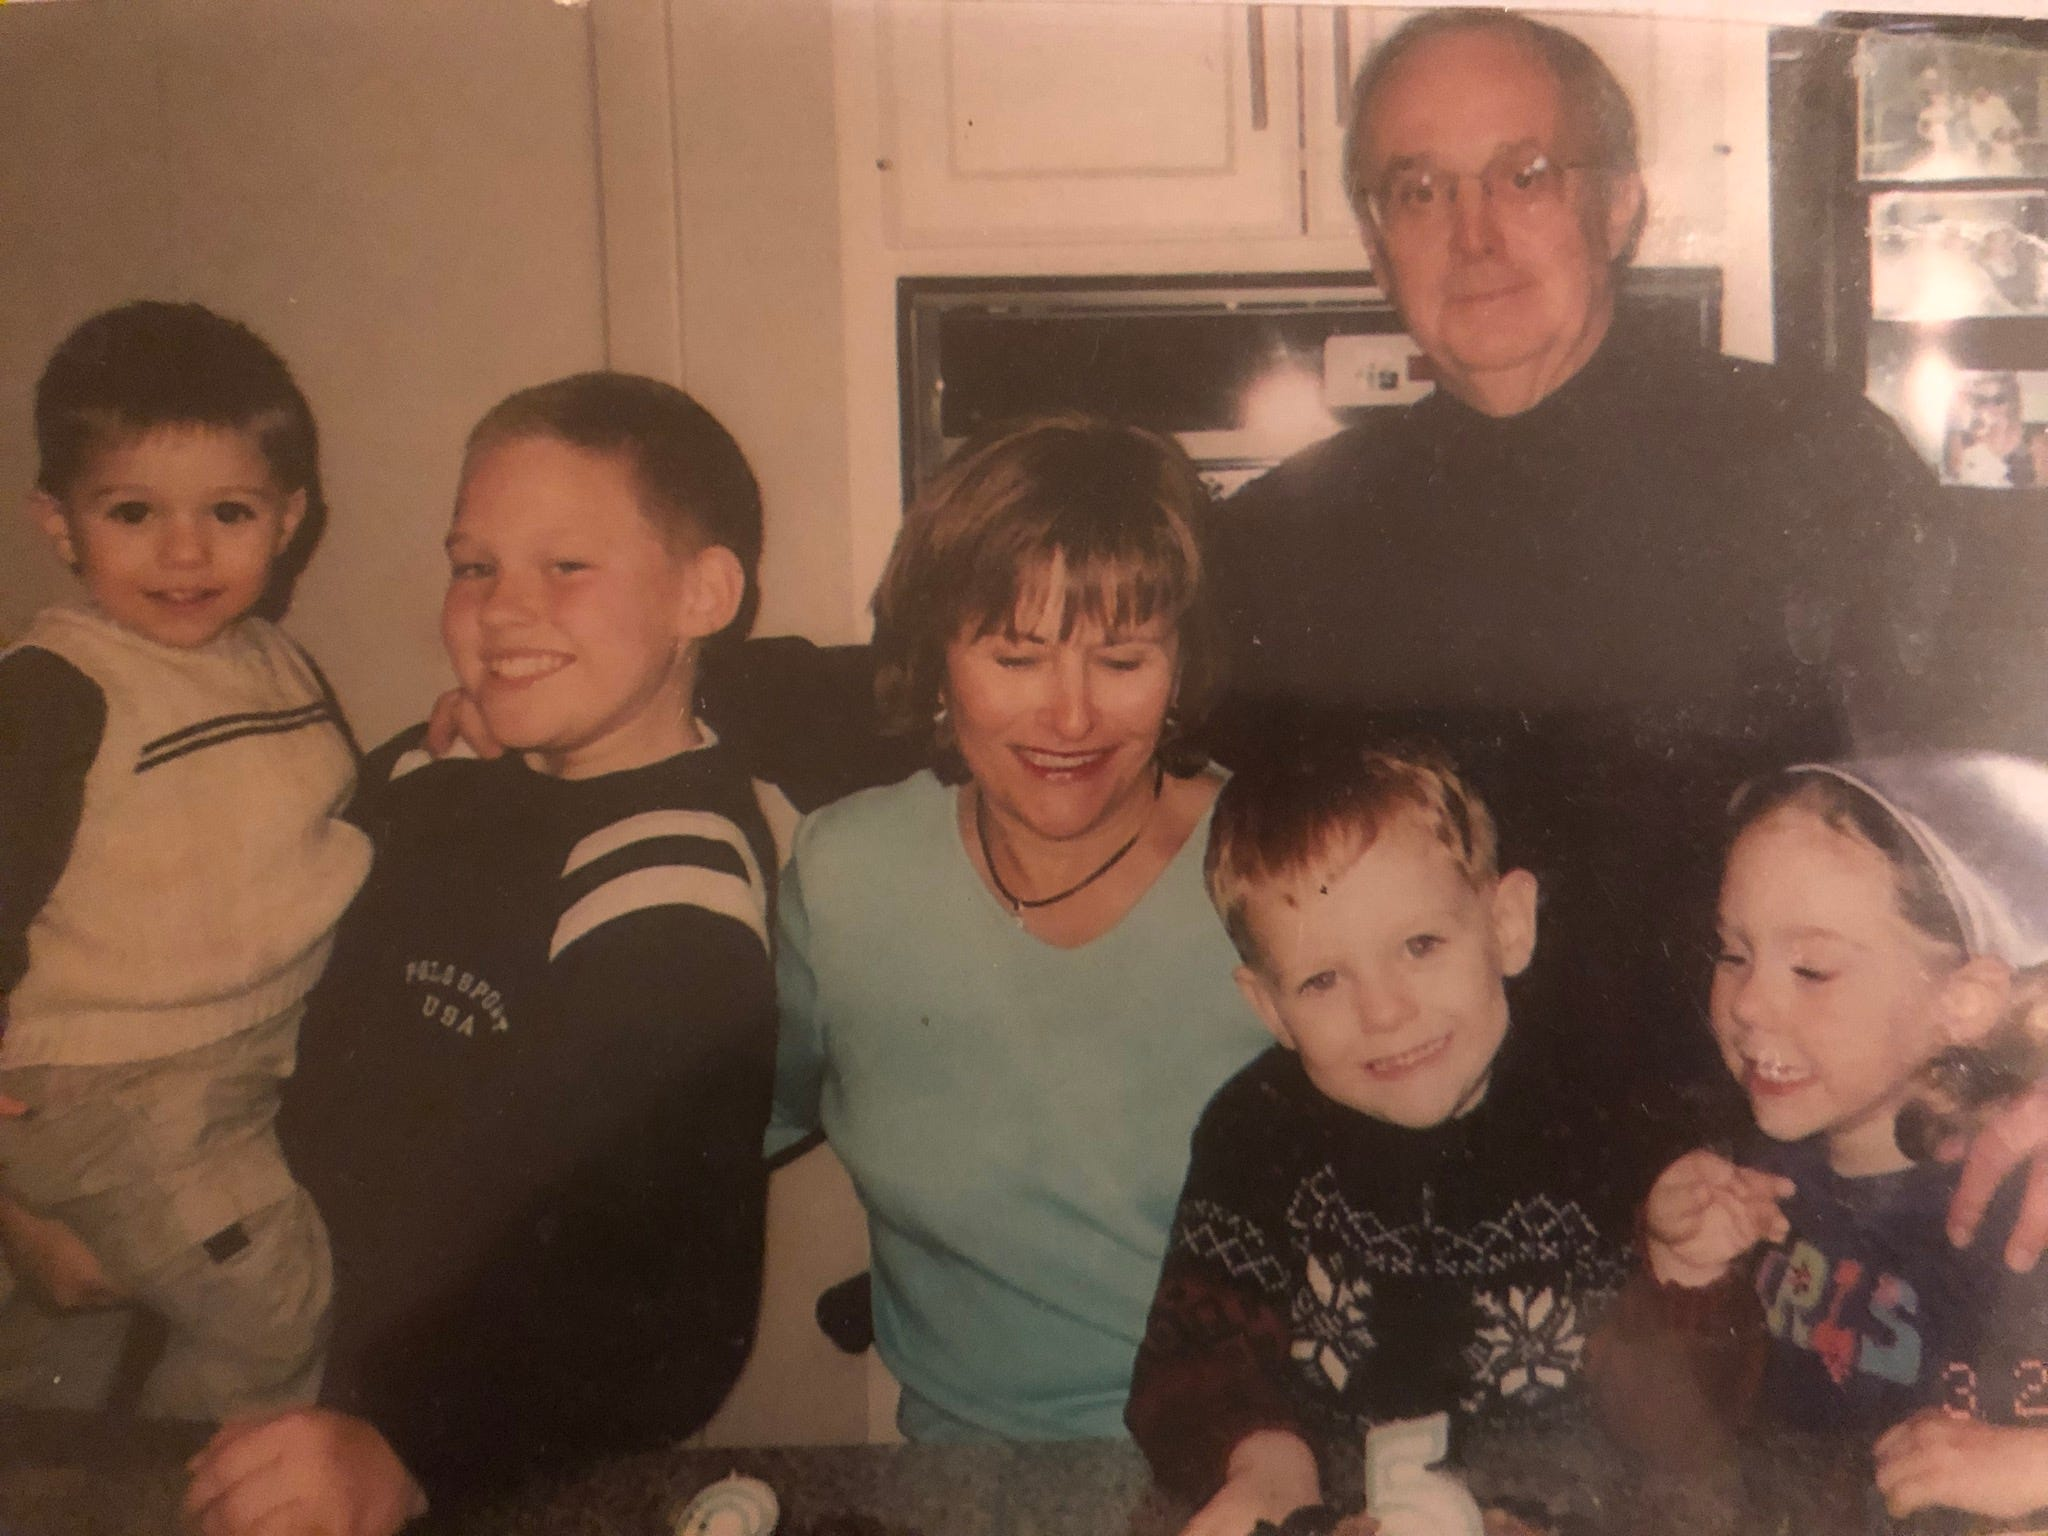 Aidan, Austin, Kathleen's parents Mary Jane and Michael, Collin and Olivia gathered in the family's kitchen in the early 2000s.